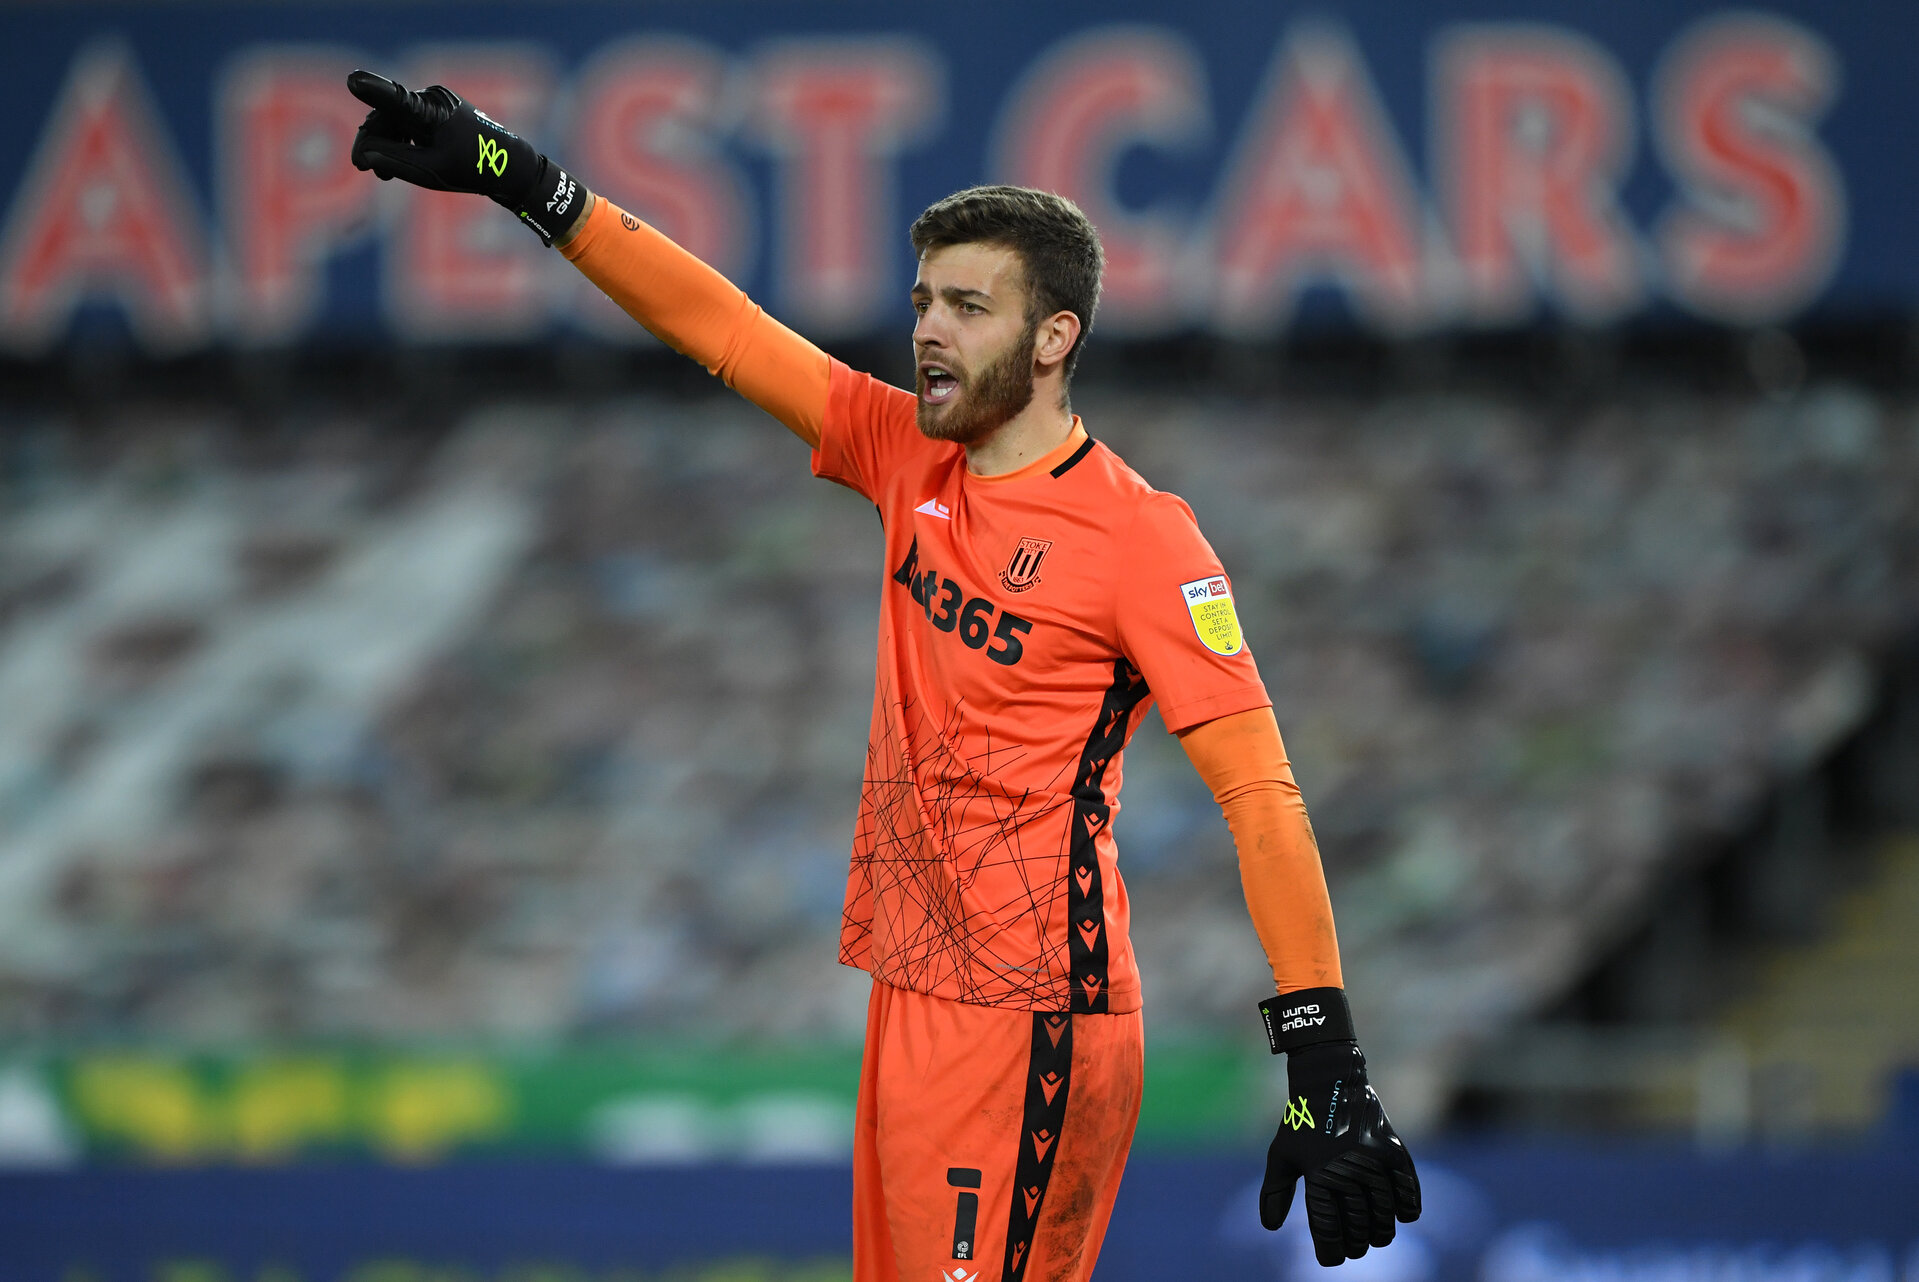 SWANSEA, WALES - OCTOBER 27: Stoke goalkeeper Angus Gunn in action during the Sky Bet Championship match between Swansea City and Stoke City at Liberty Stadium on October 27, 2020 in Swansea, Wales. Sporting stadiums around the UK remain under strict restrictions due to the Coronavirus Pandemic as Government social distancing laws prohibit fans inside venues resulting in games being played behind closed doors. (Photo by Stu Forster/Getty Images)